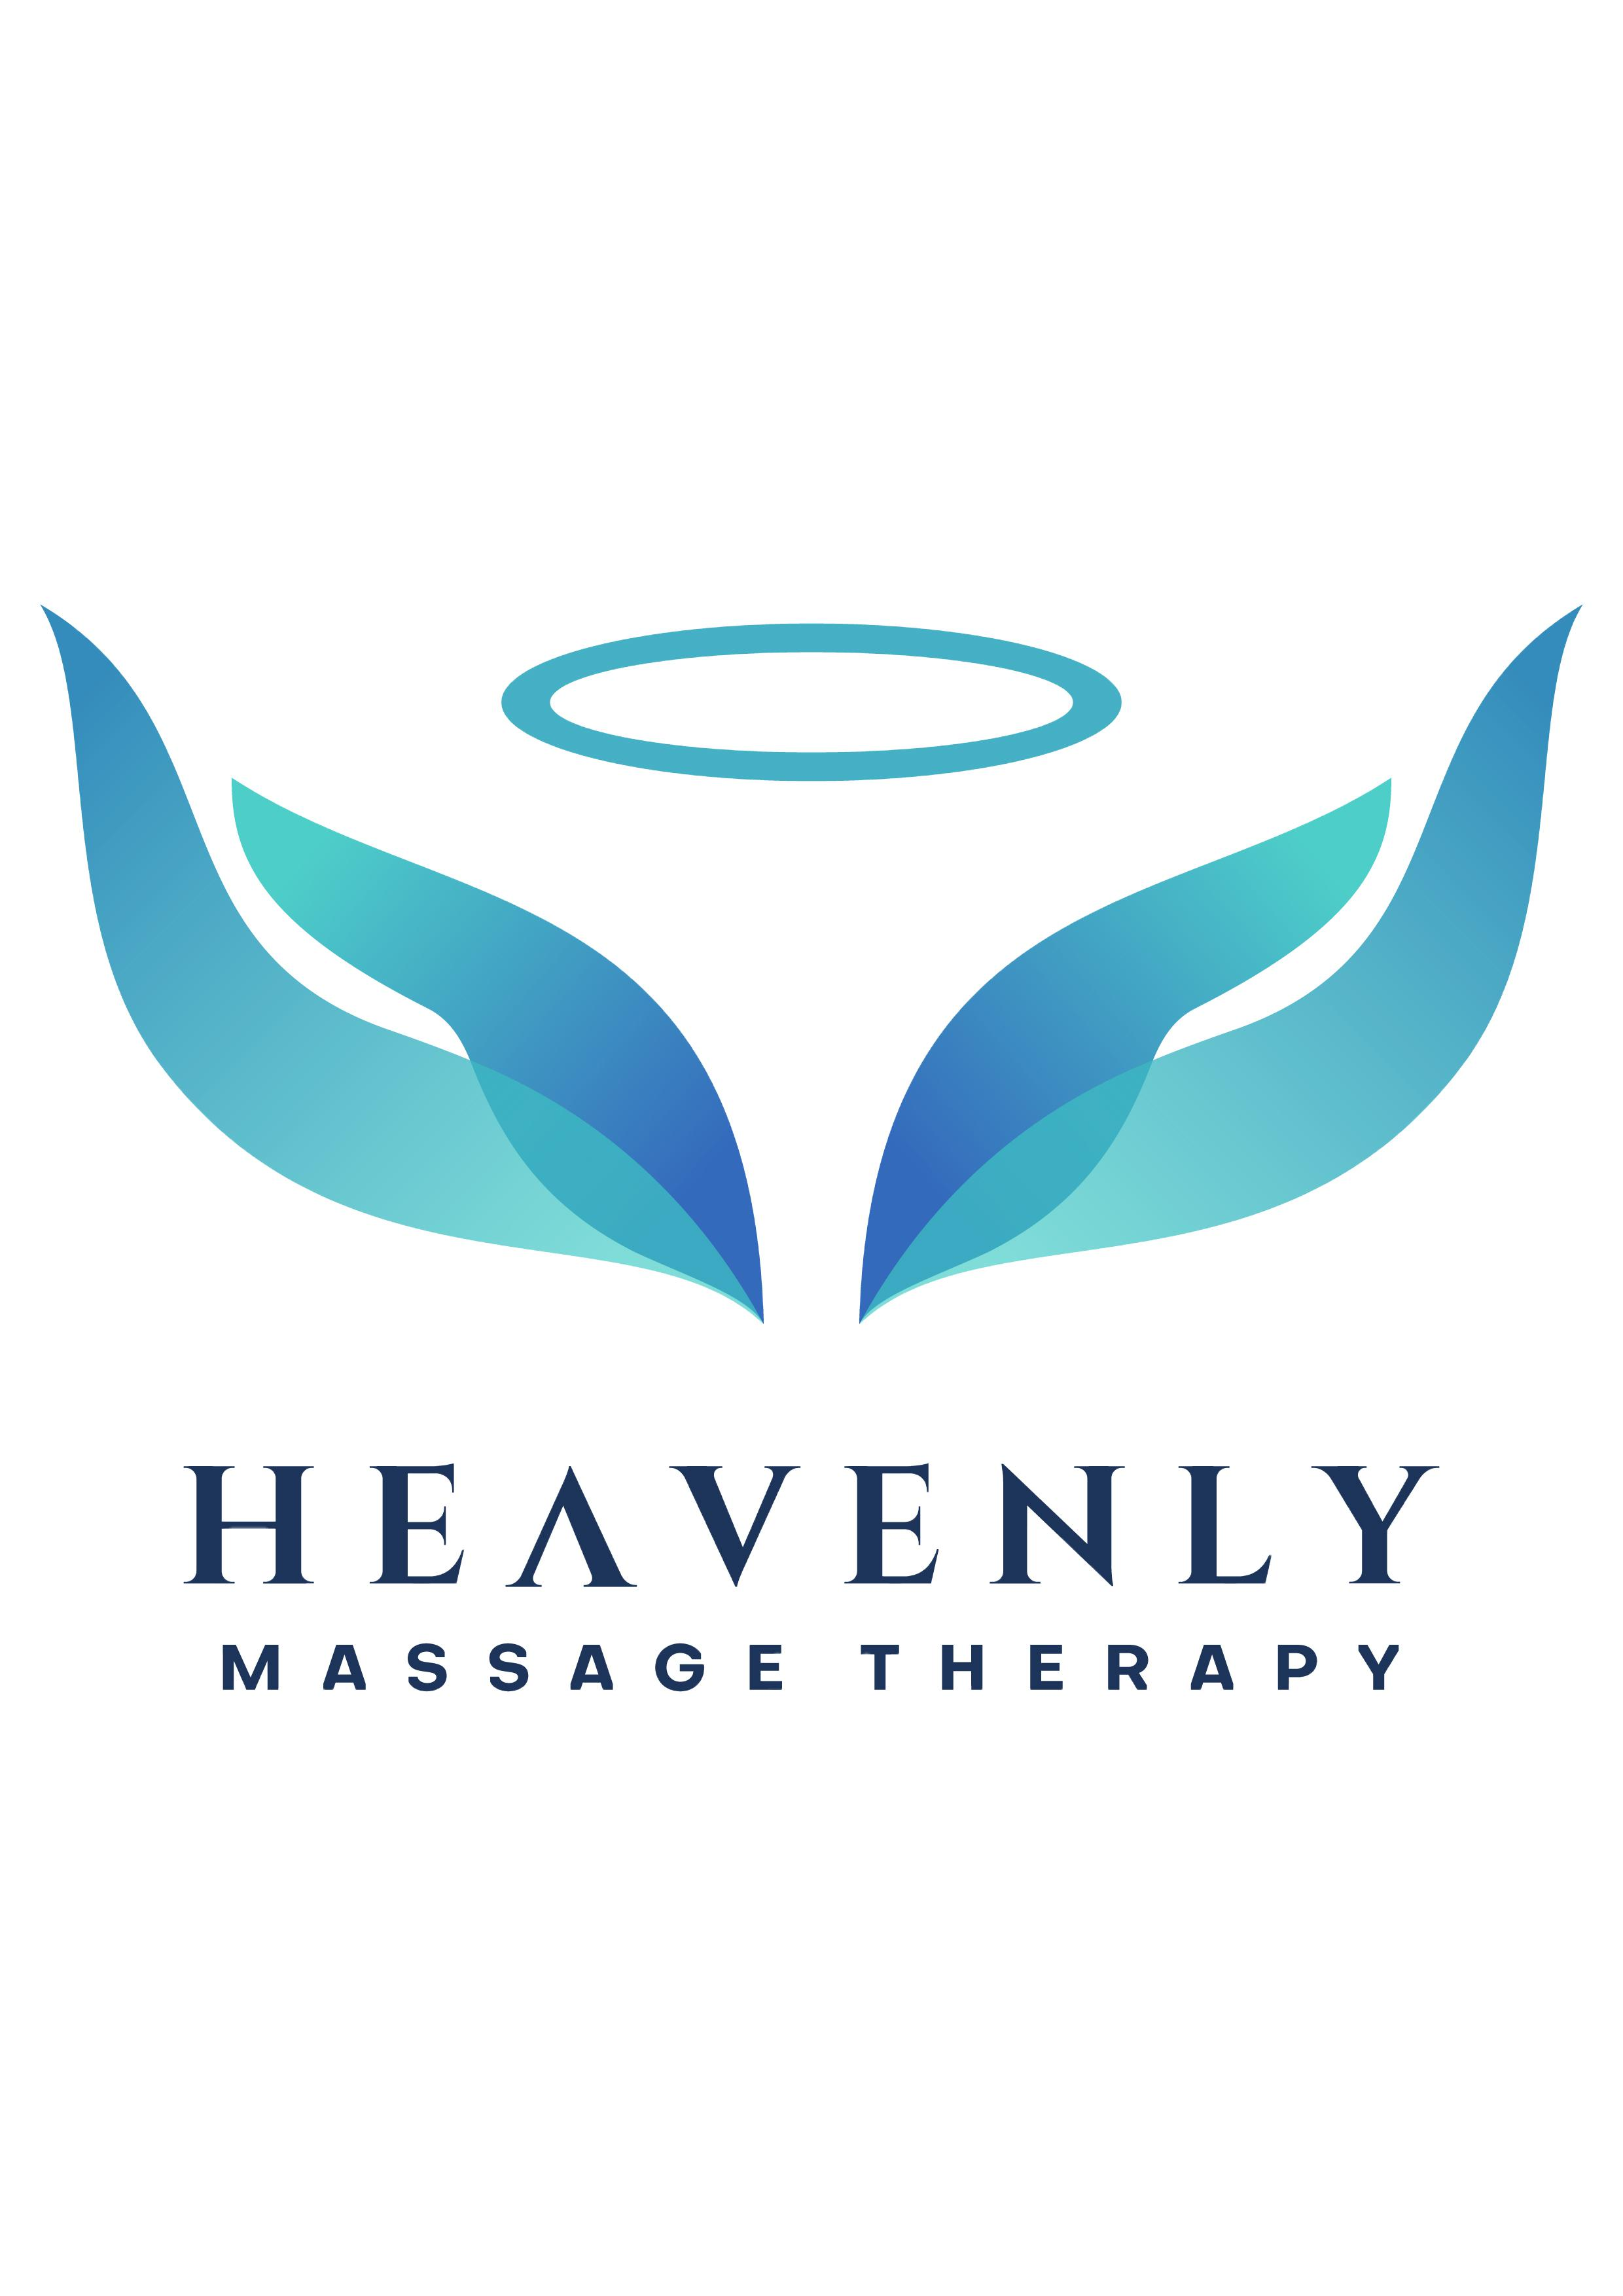 Heavenly Massage Therapy Logo